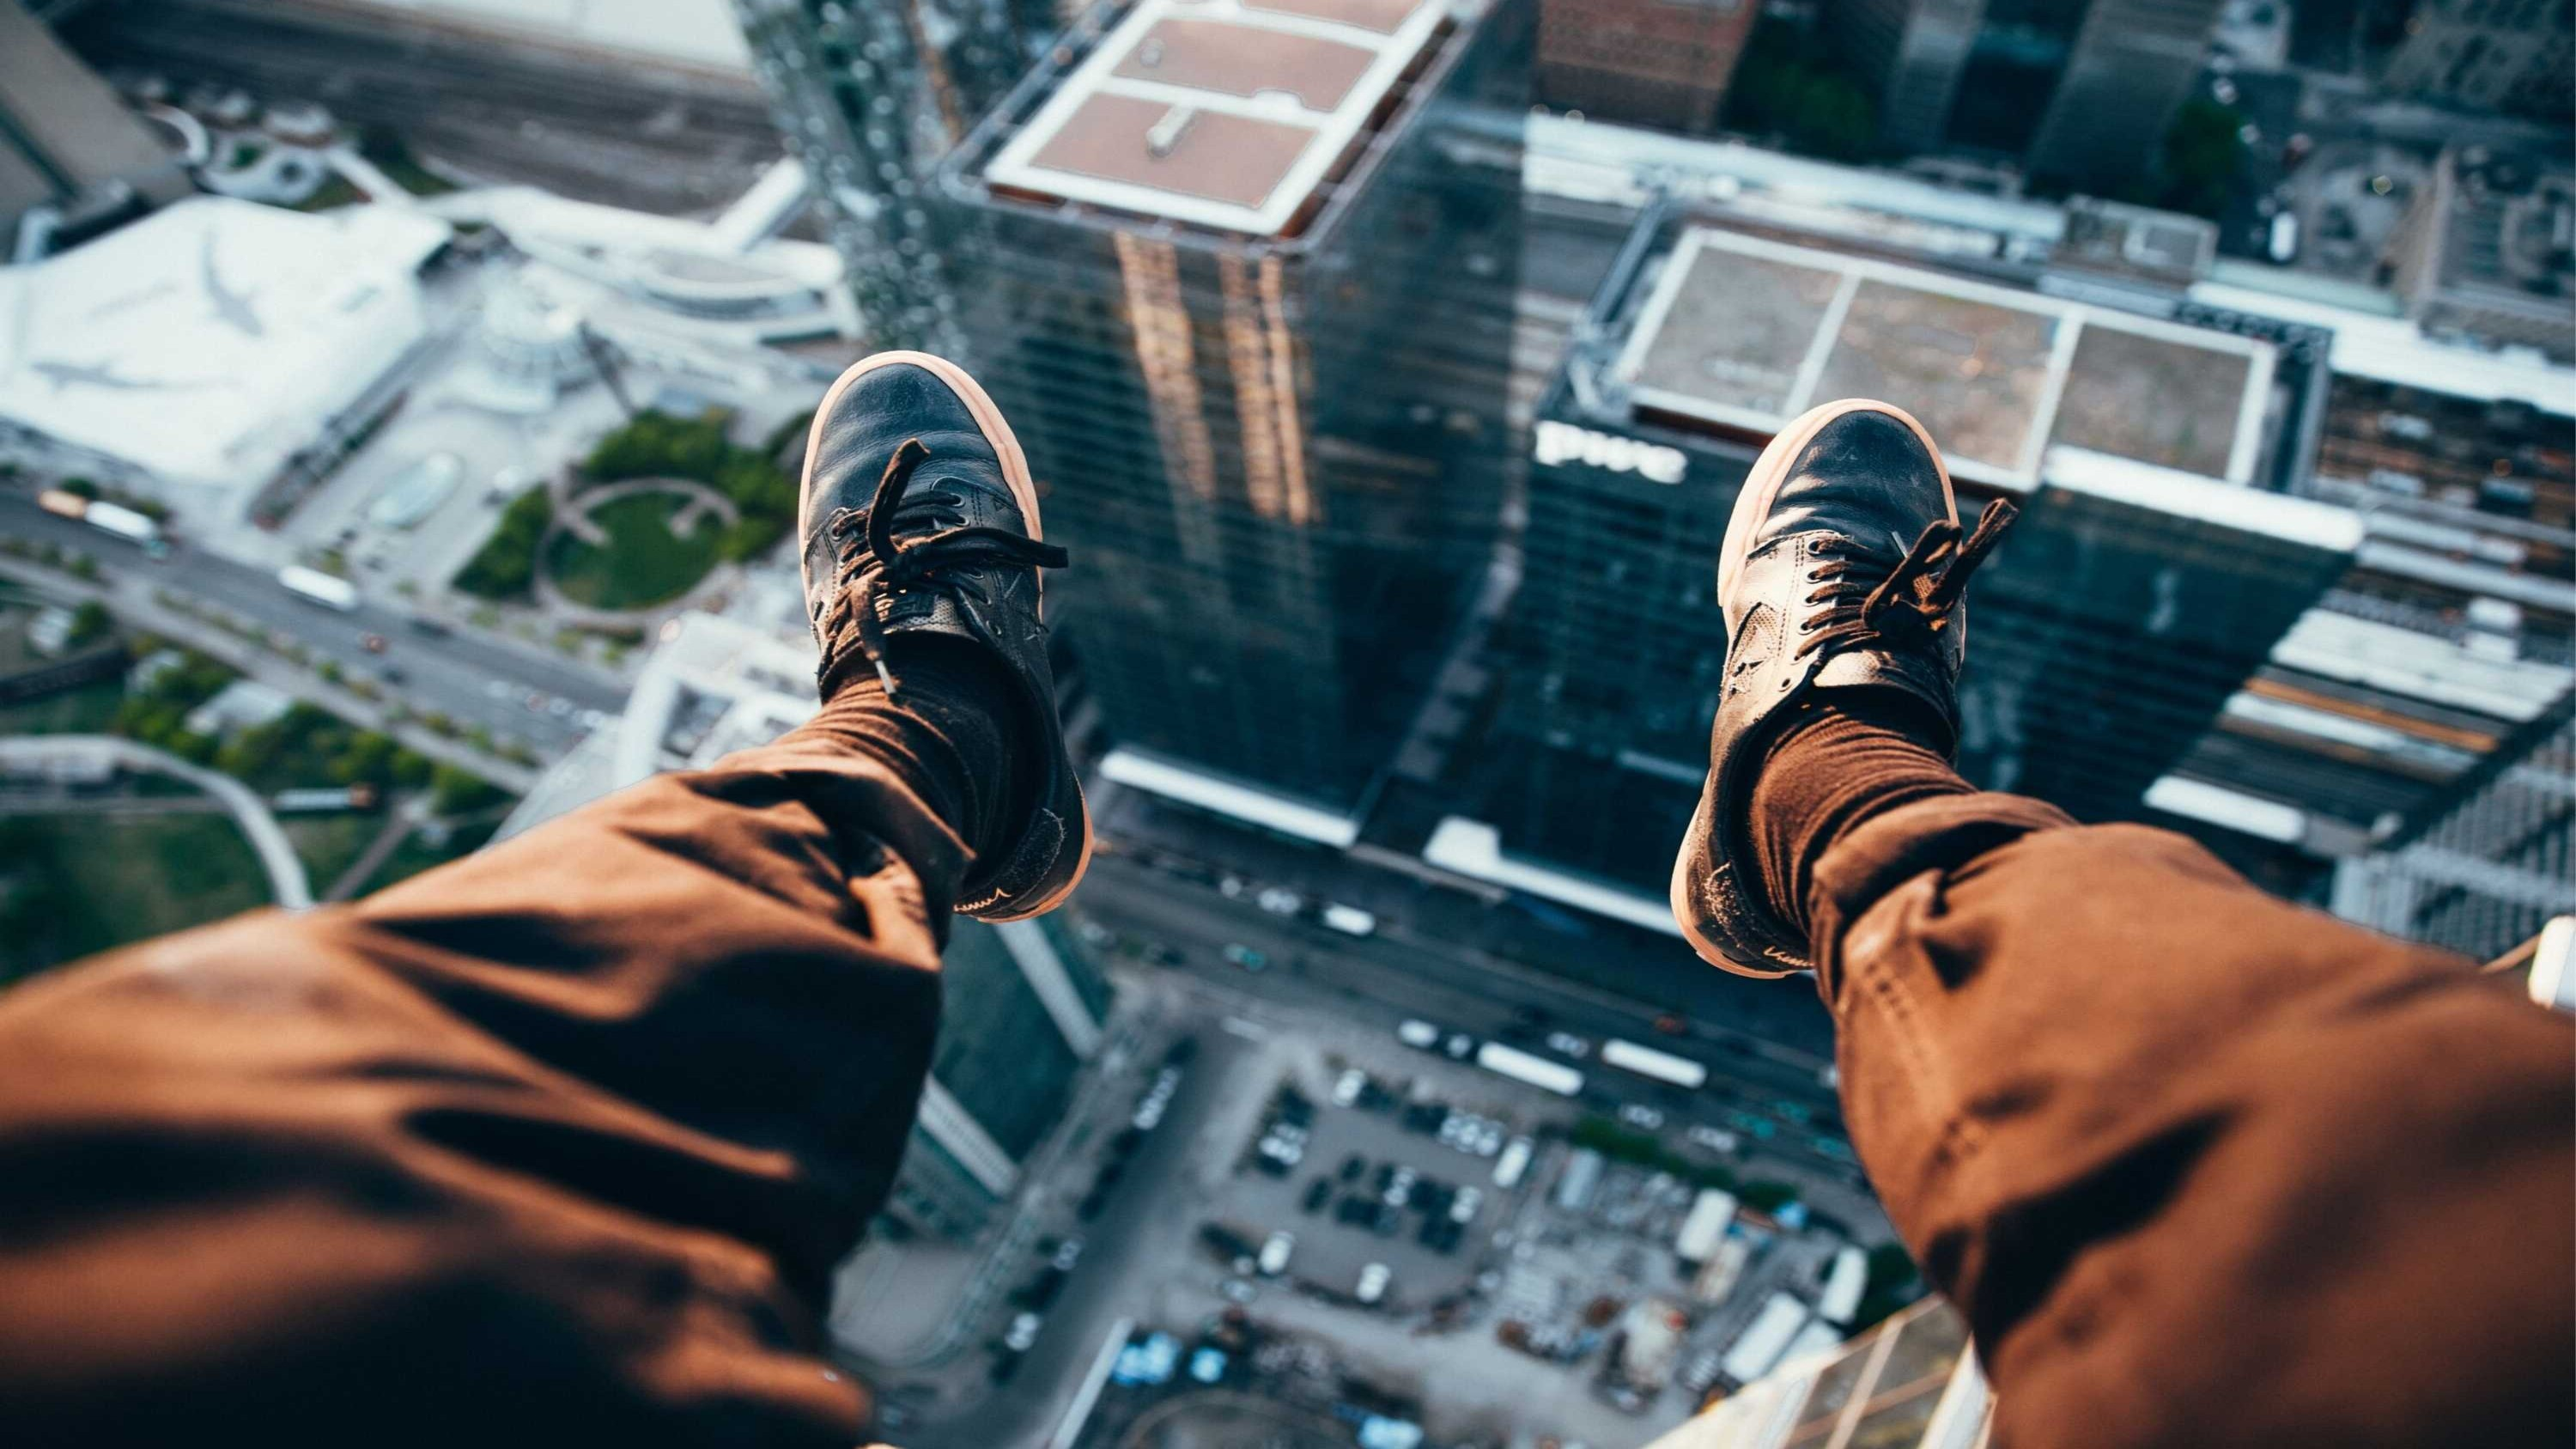 Our Best Career Advice In (2) Words image of man dangling his feet over an edge